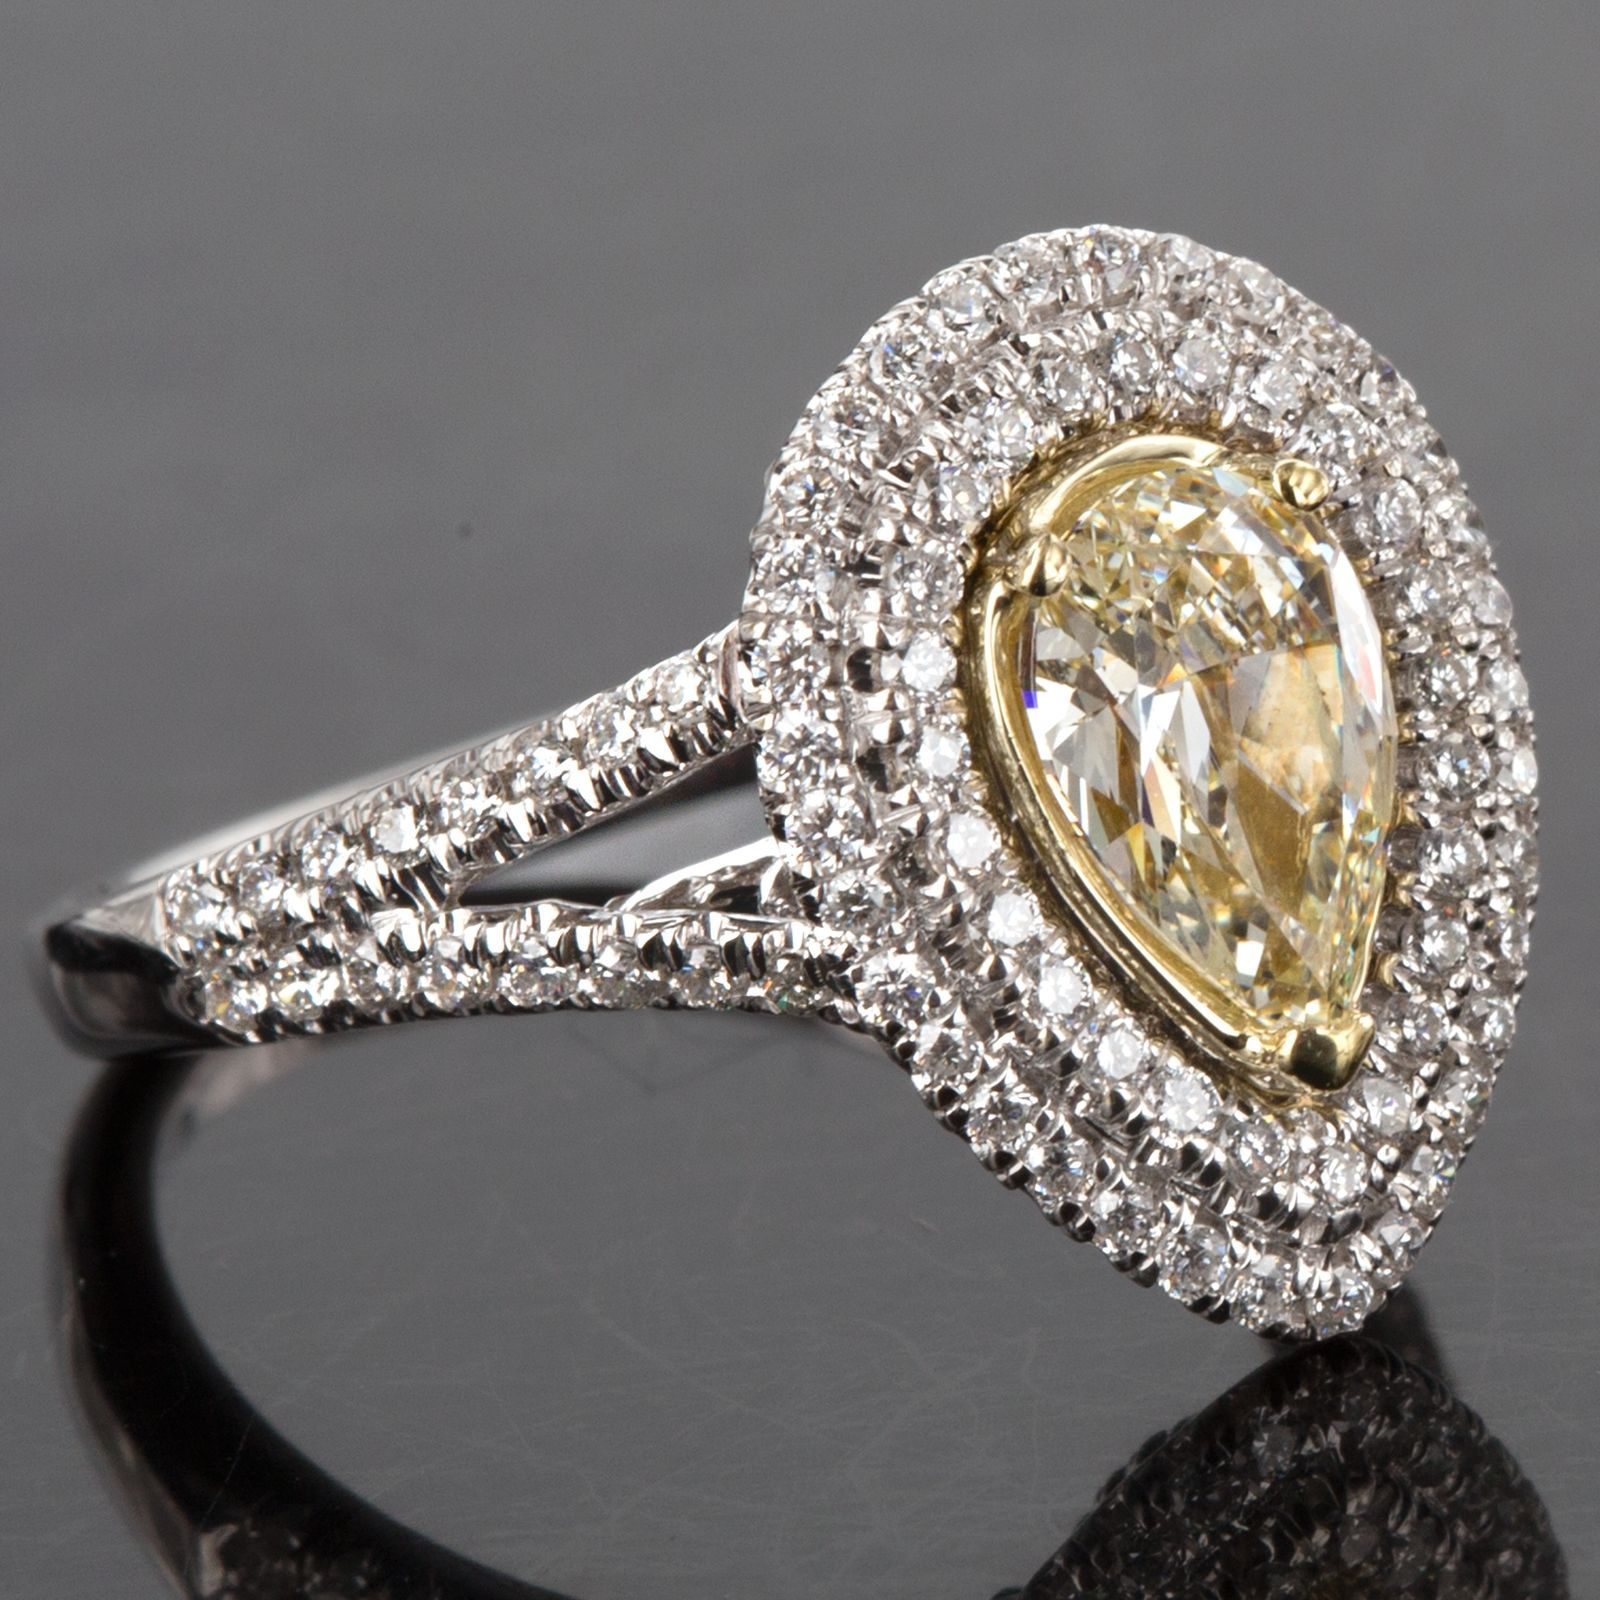 Primary image for 1.76 TCW Pear Yellow Diamond Engagement Ring Split Shank Halo 18K Two Tone Gold